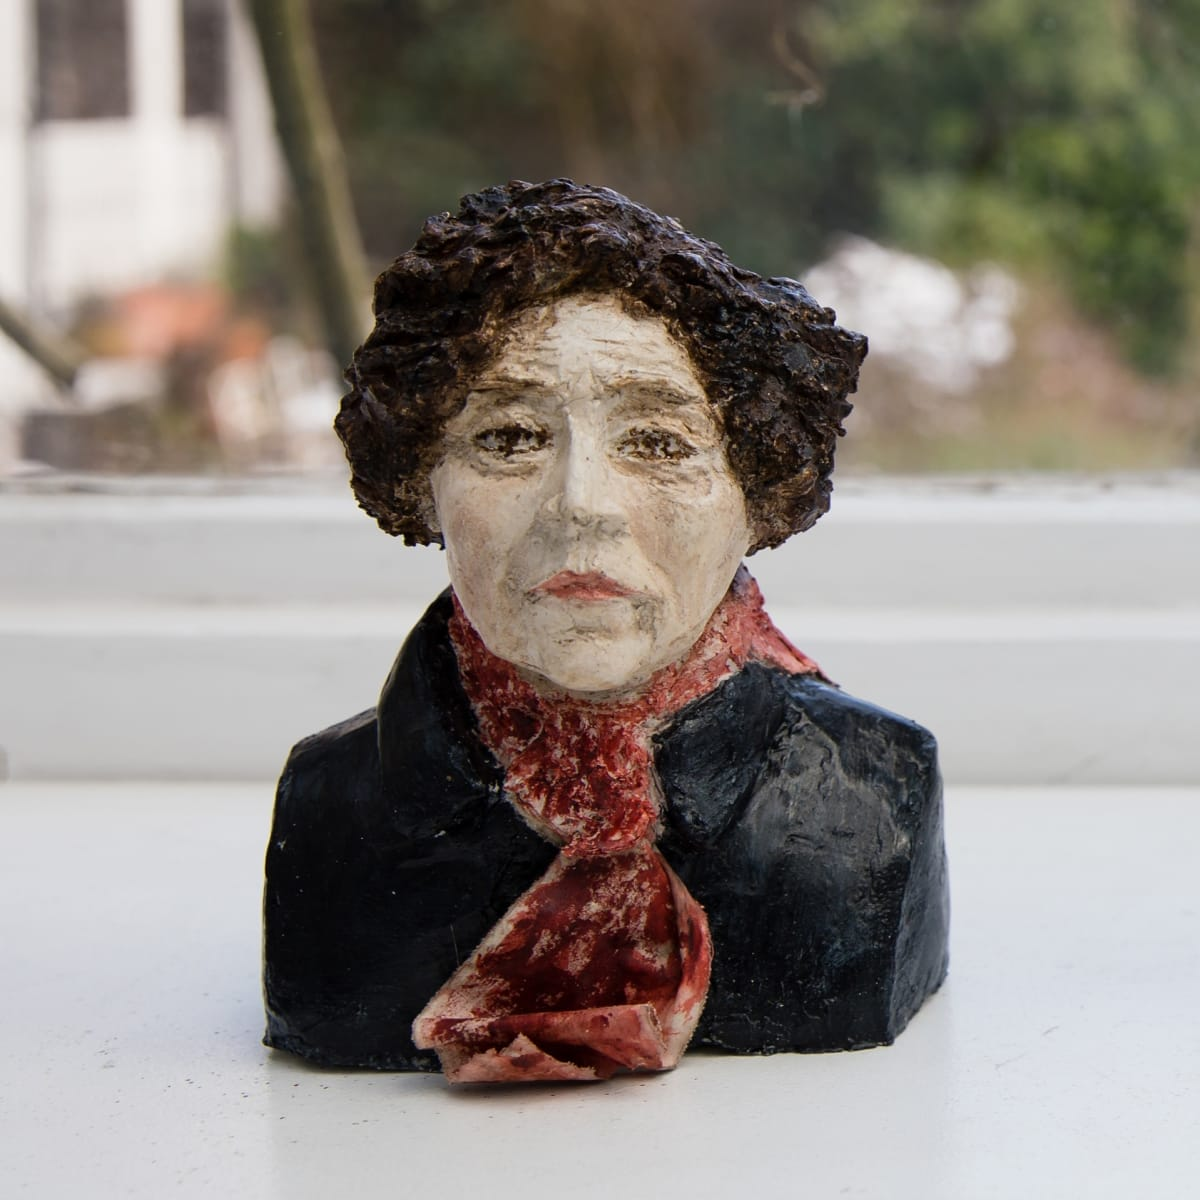 Nicole Farhi Colette ciment fondu and acrylic; hand-painted bronze casts available to purchase 17 x 12 x 6 cm edition of 7 + 3 APs